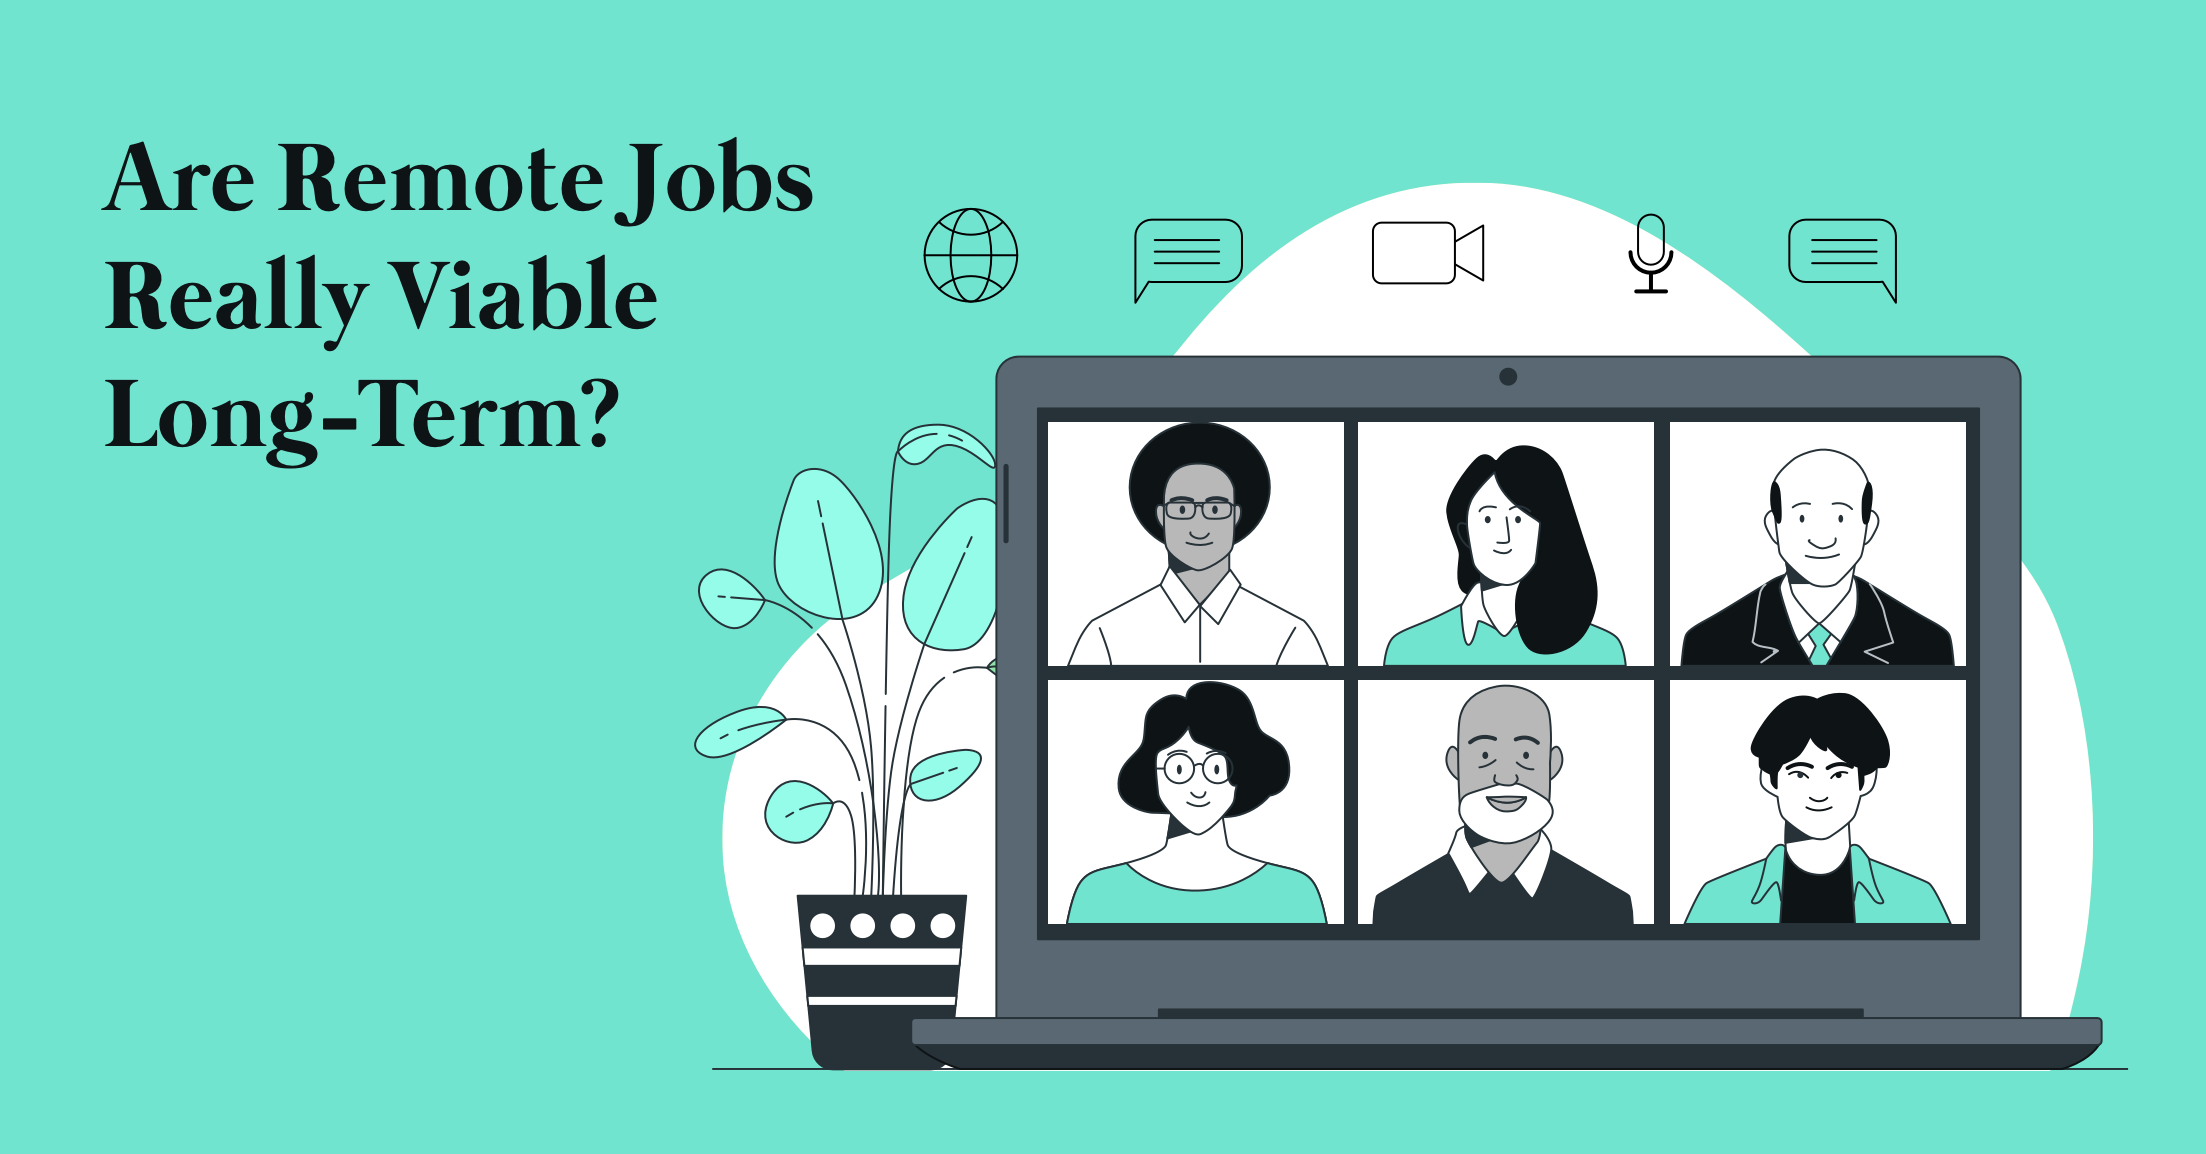 Are Remote Jobs Really Viable Long-Term?